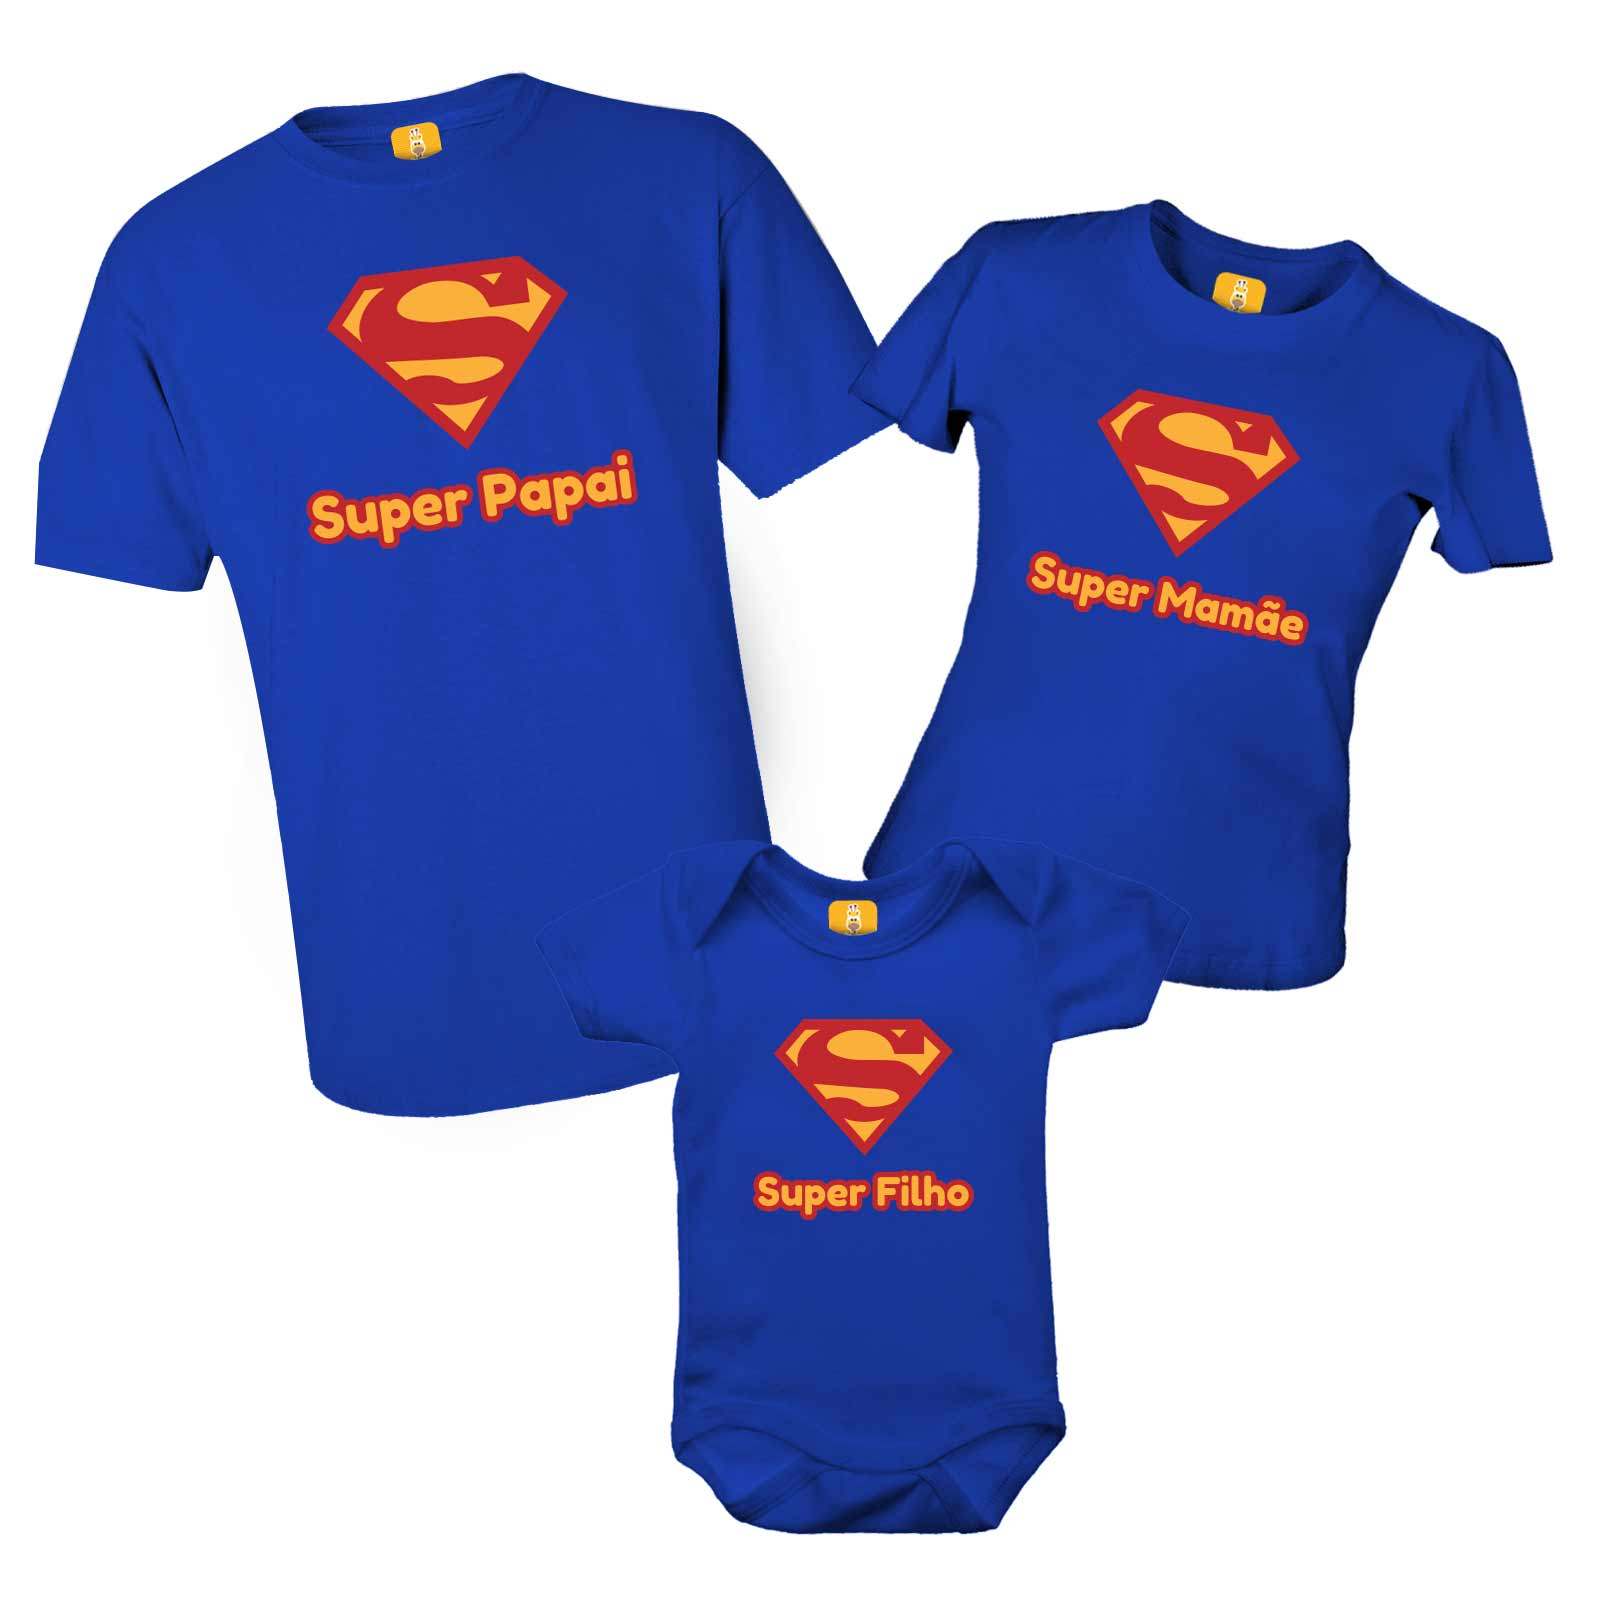 Kit de camisetas do Superman